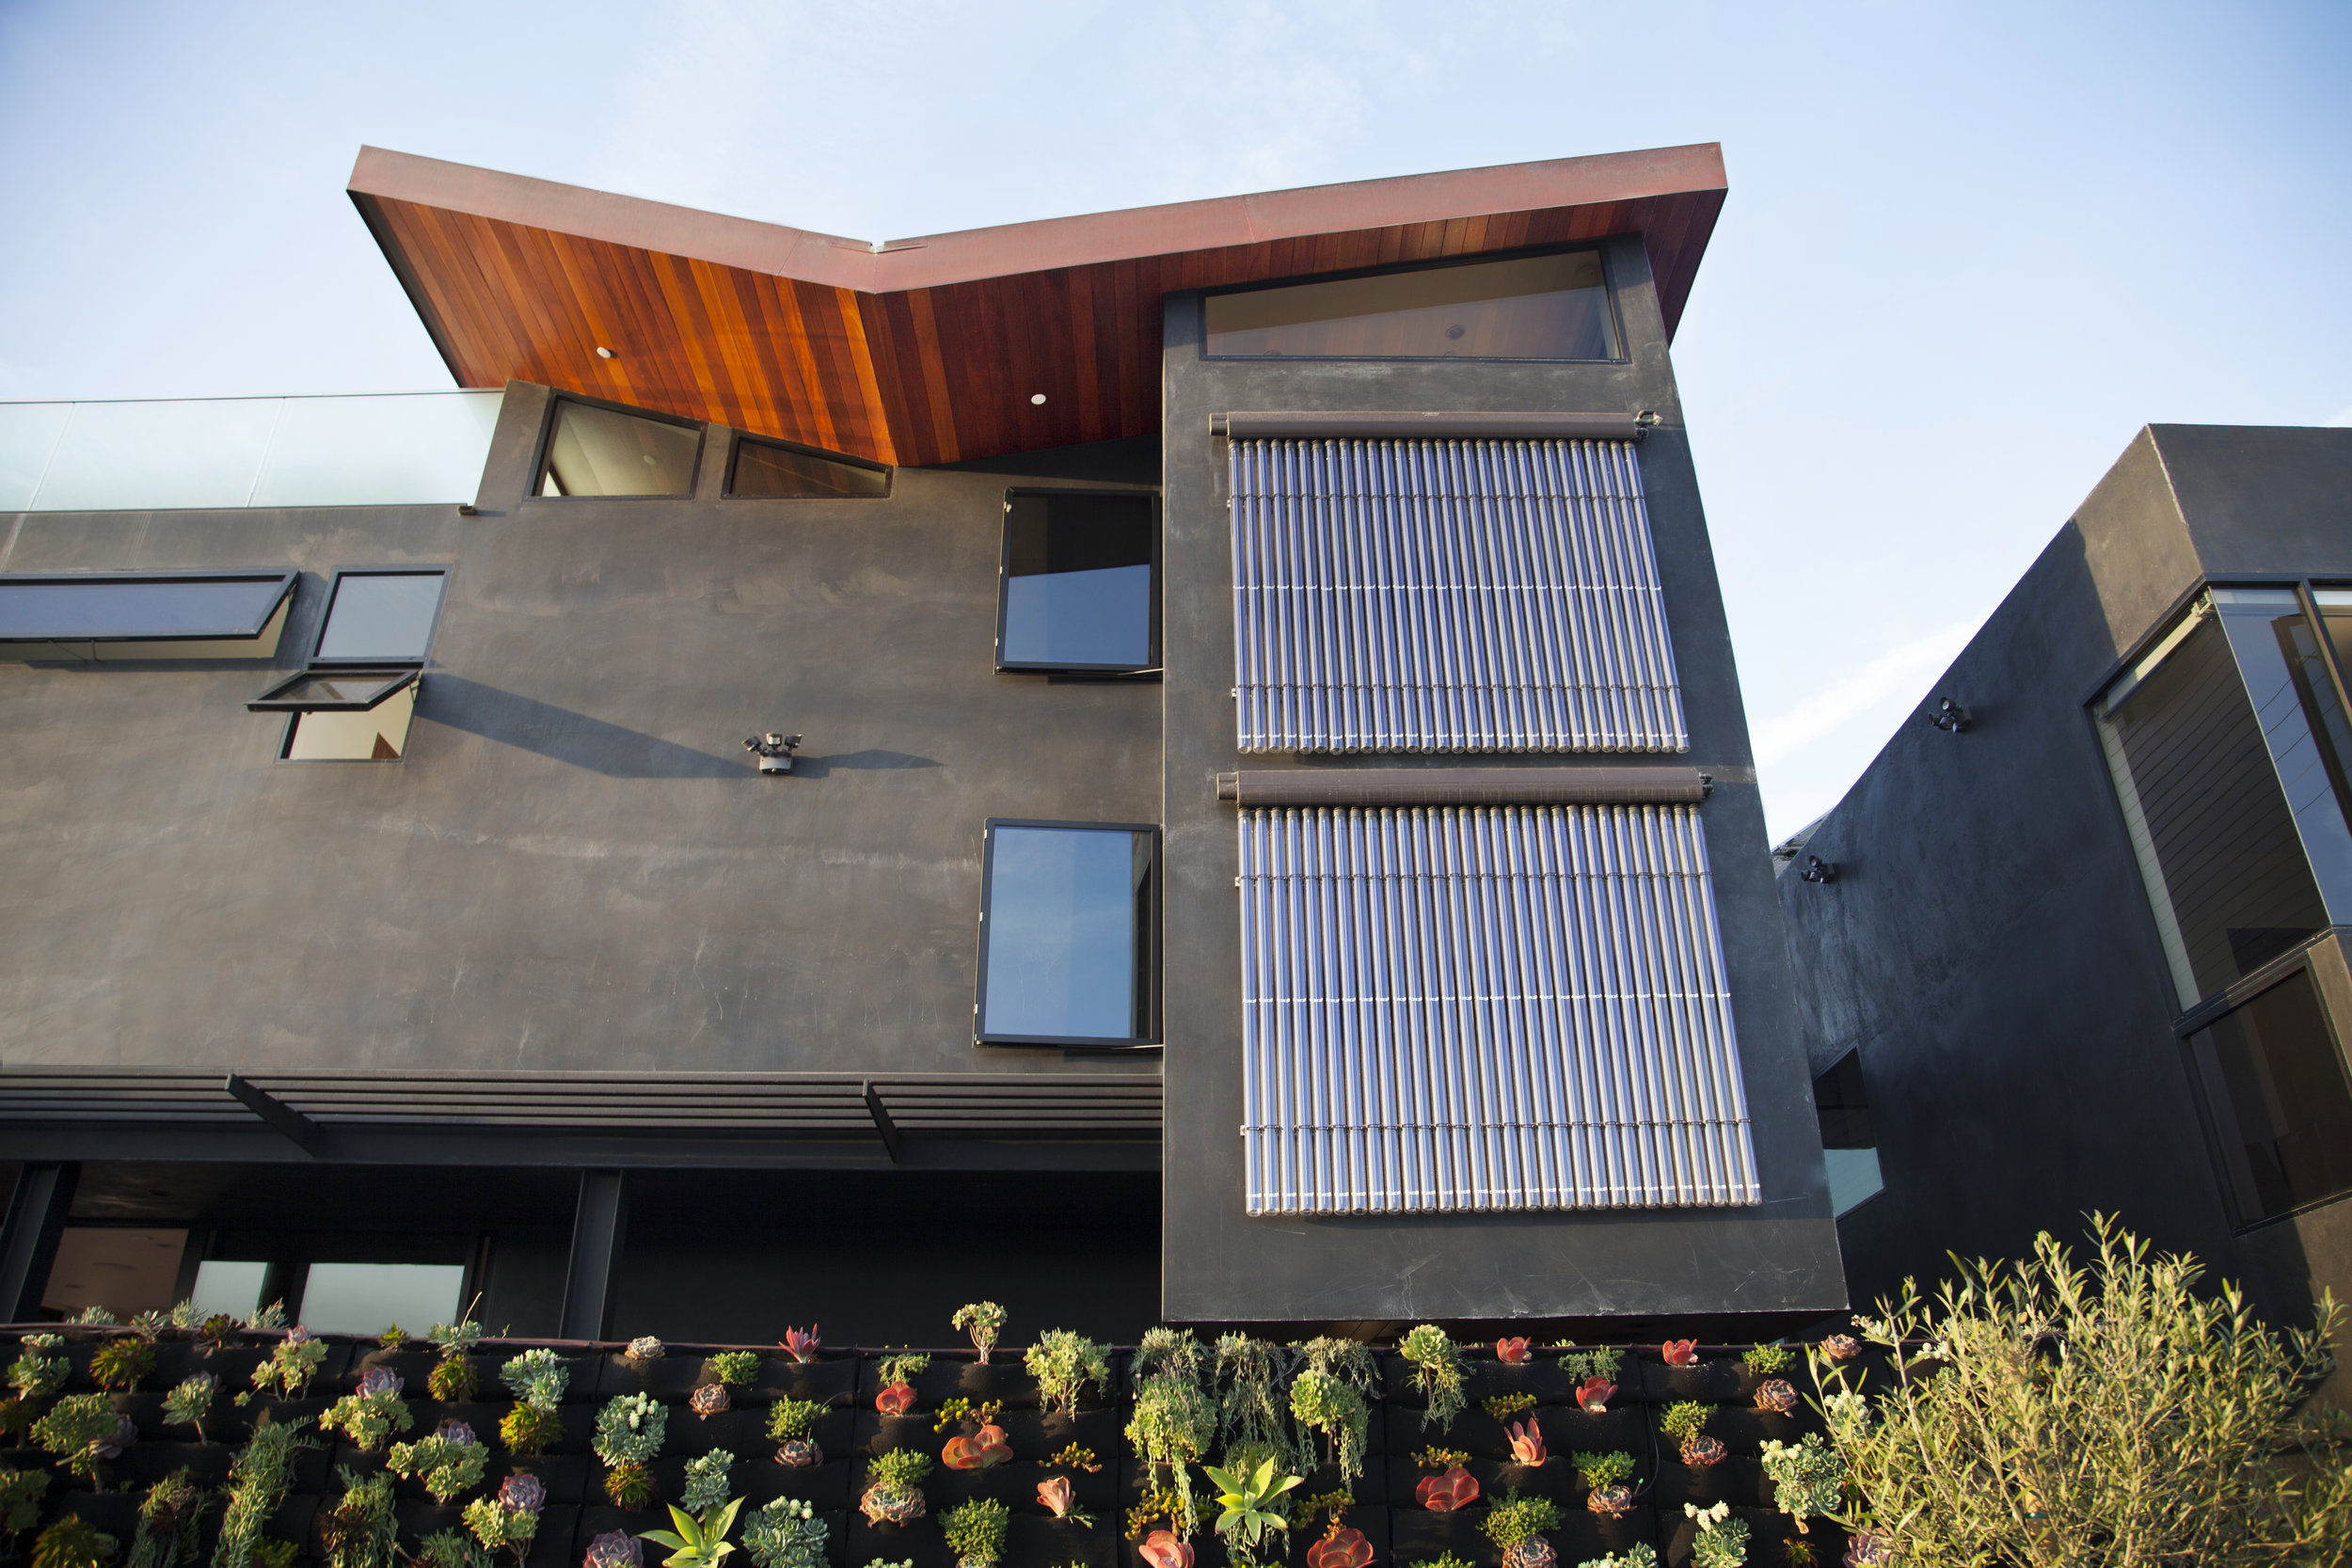 S.E.A.-Studio-Environmental-Architecture-David-Hertz-FAIA-Butterfly-House-Venice-Beach-California-sustainable-regenerative-restorative-green-design-renewable-energy-evacuated-tube-solar-collector-residential-green-wall-stormwater-natural-ventilation-E.jpg